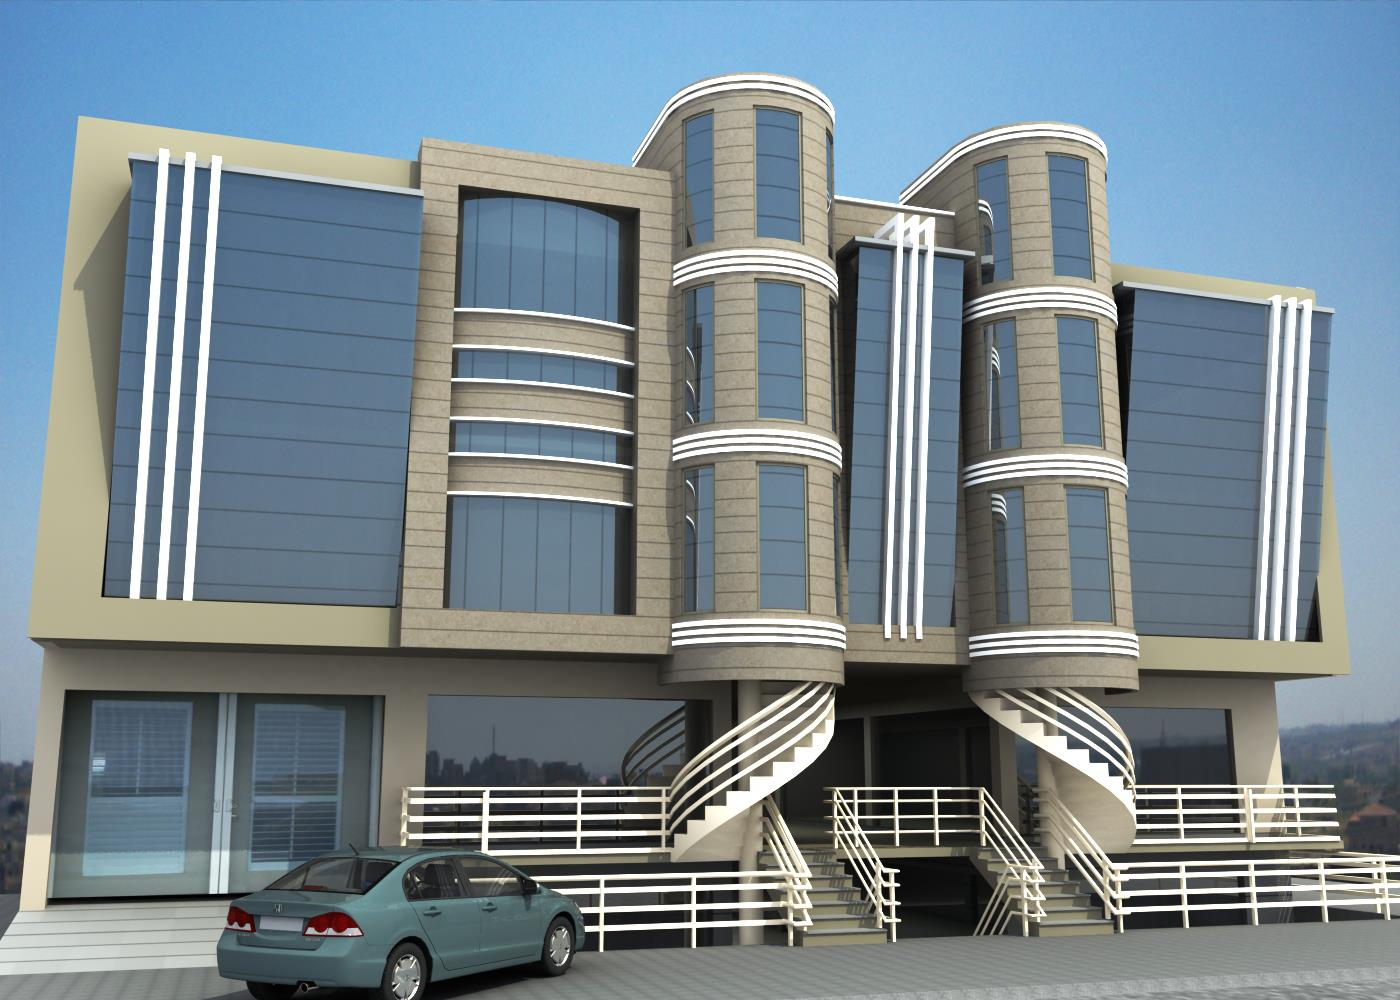 3D Building View http://3darchitecturevisualization.blogspot.com/2013/01/commercial-buildng-design.html